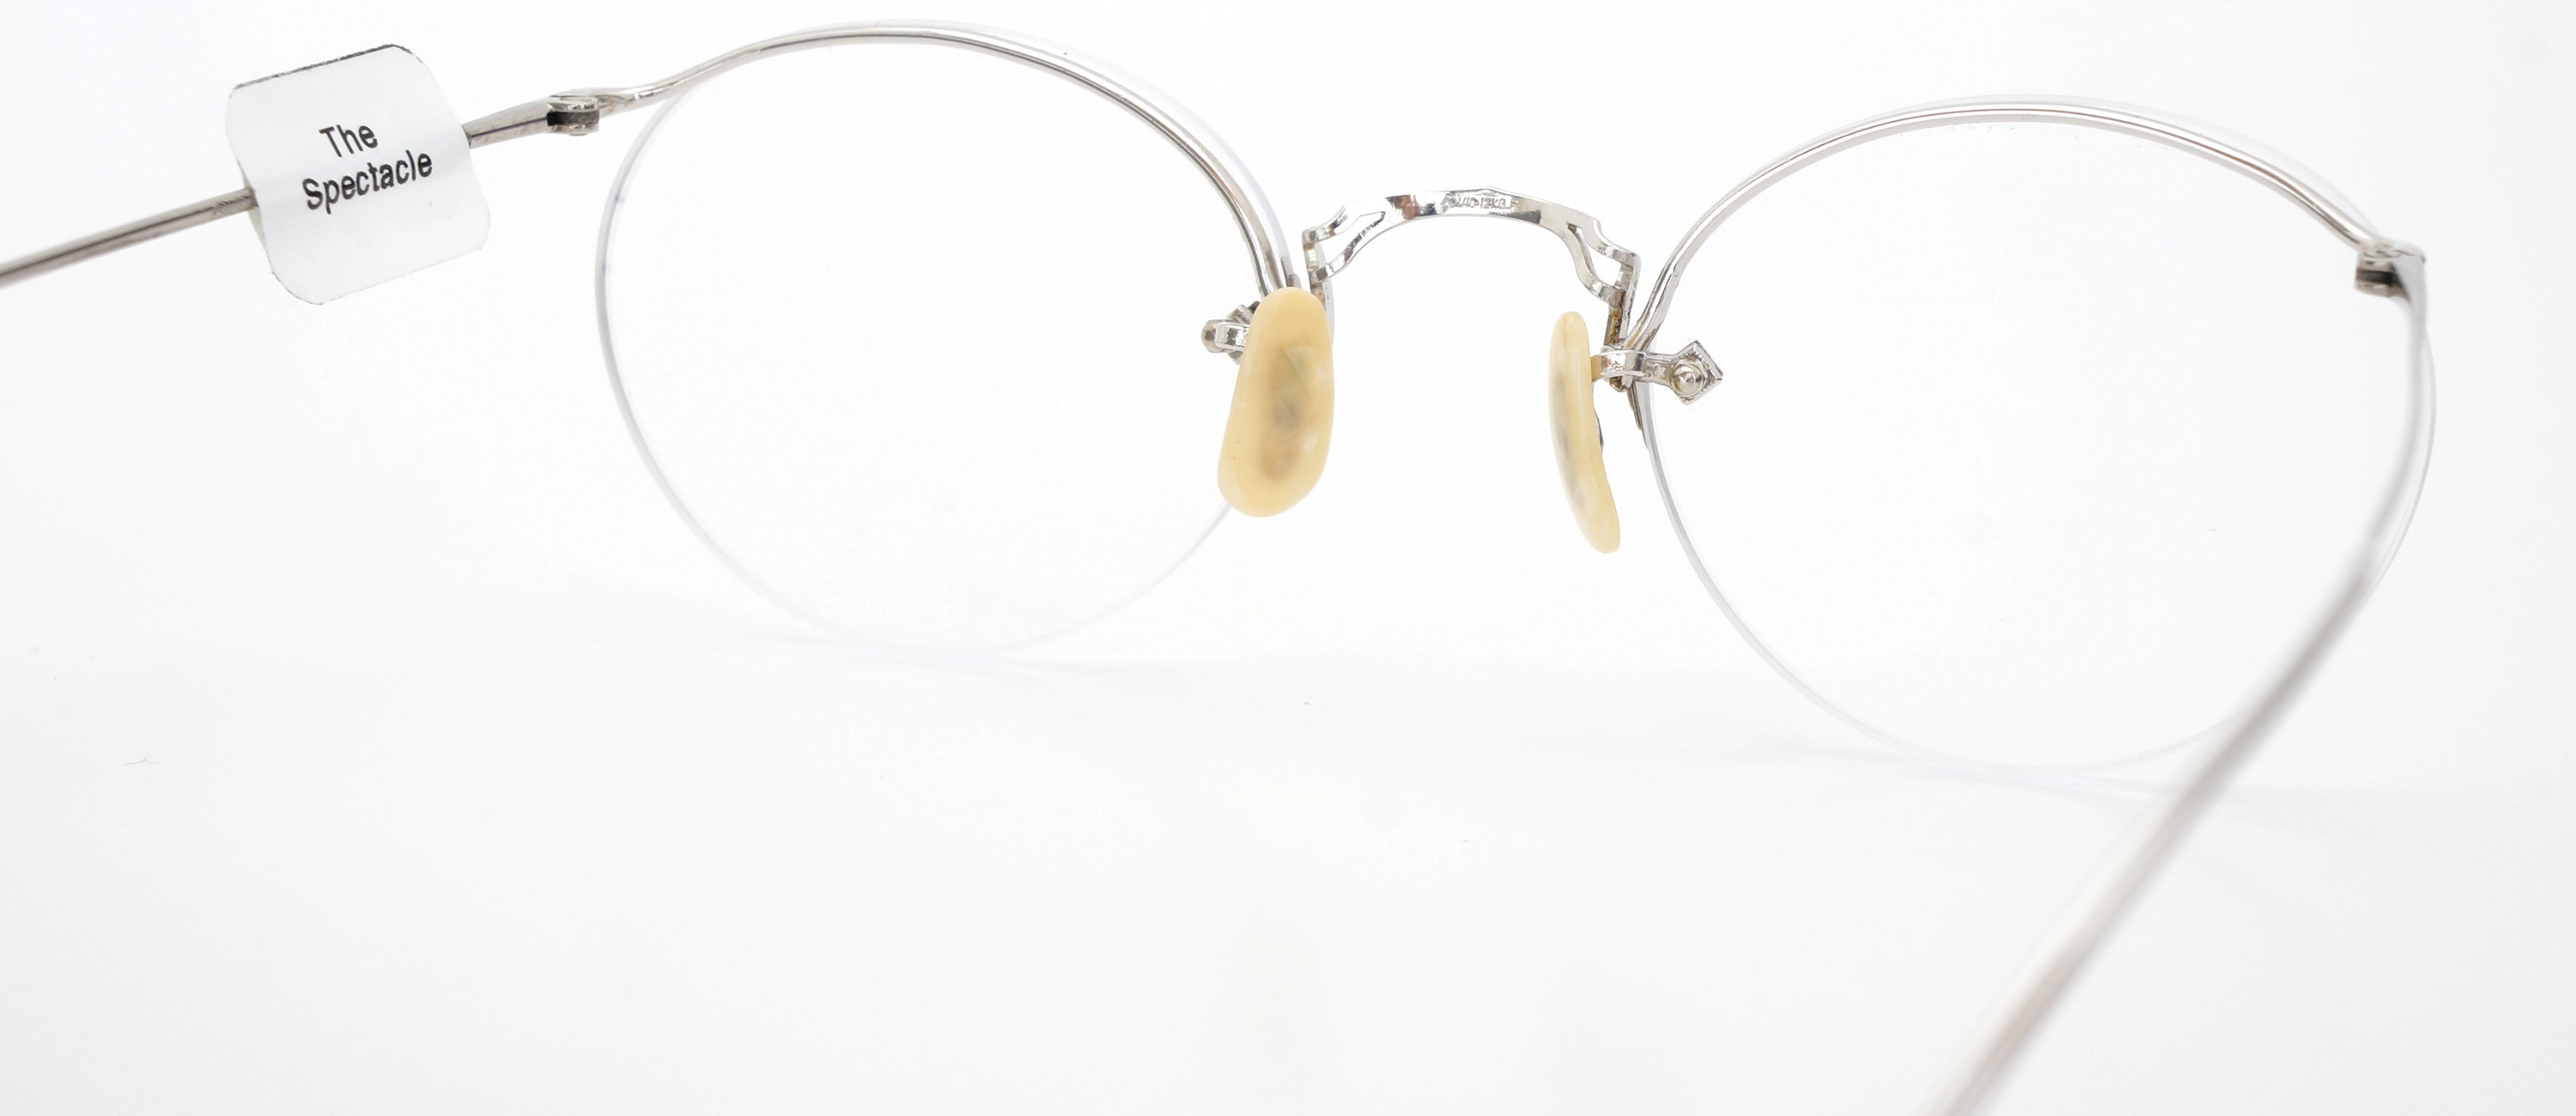 The Spectacle メガネ 1938 American Optical Numont Ful-Vue P-6 WG 45-23 イメージ7